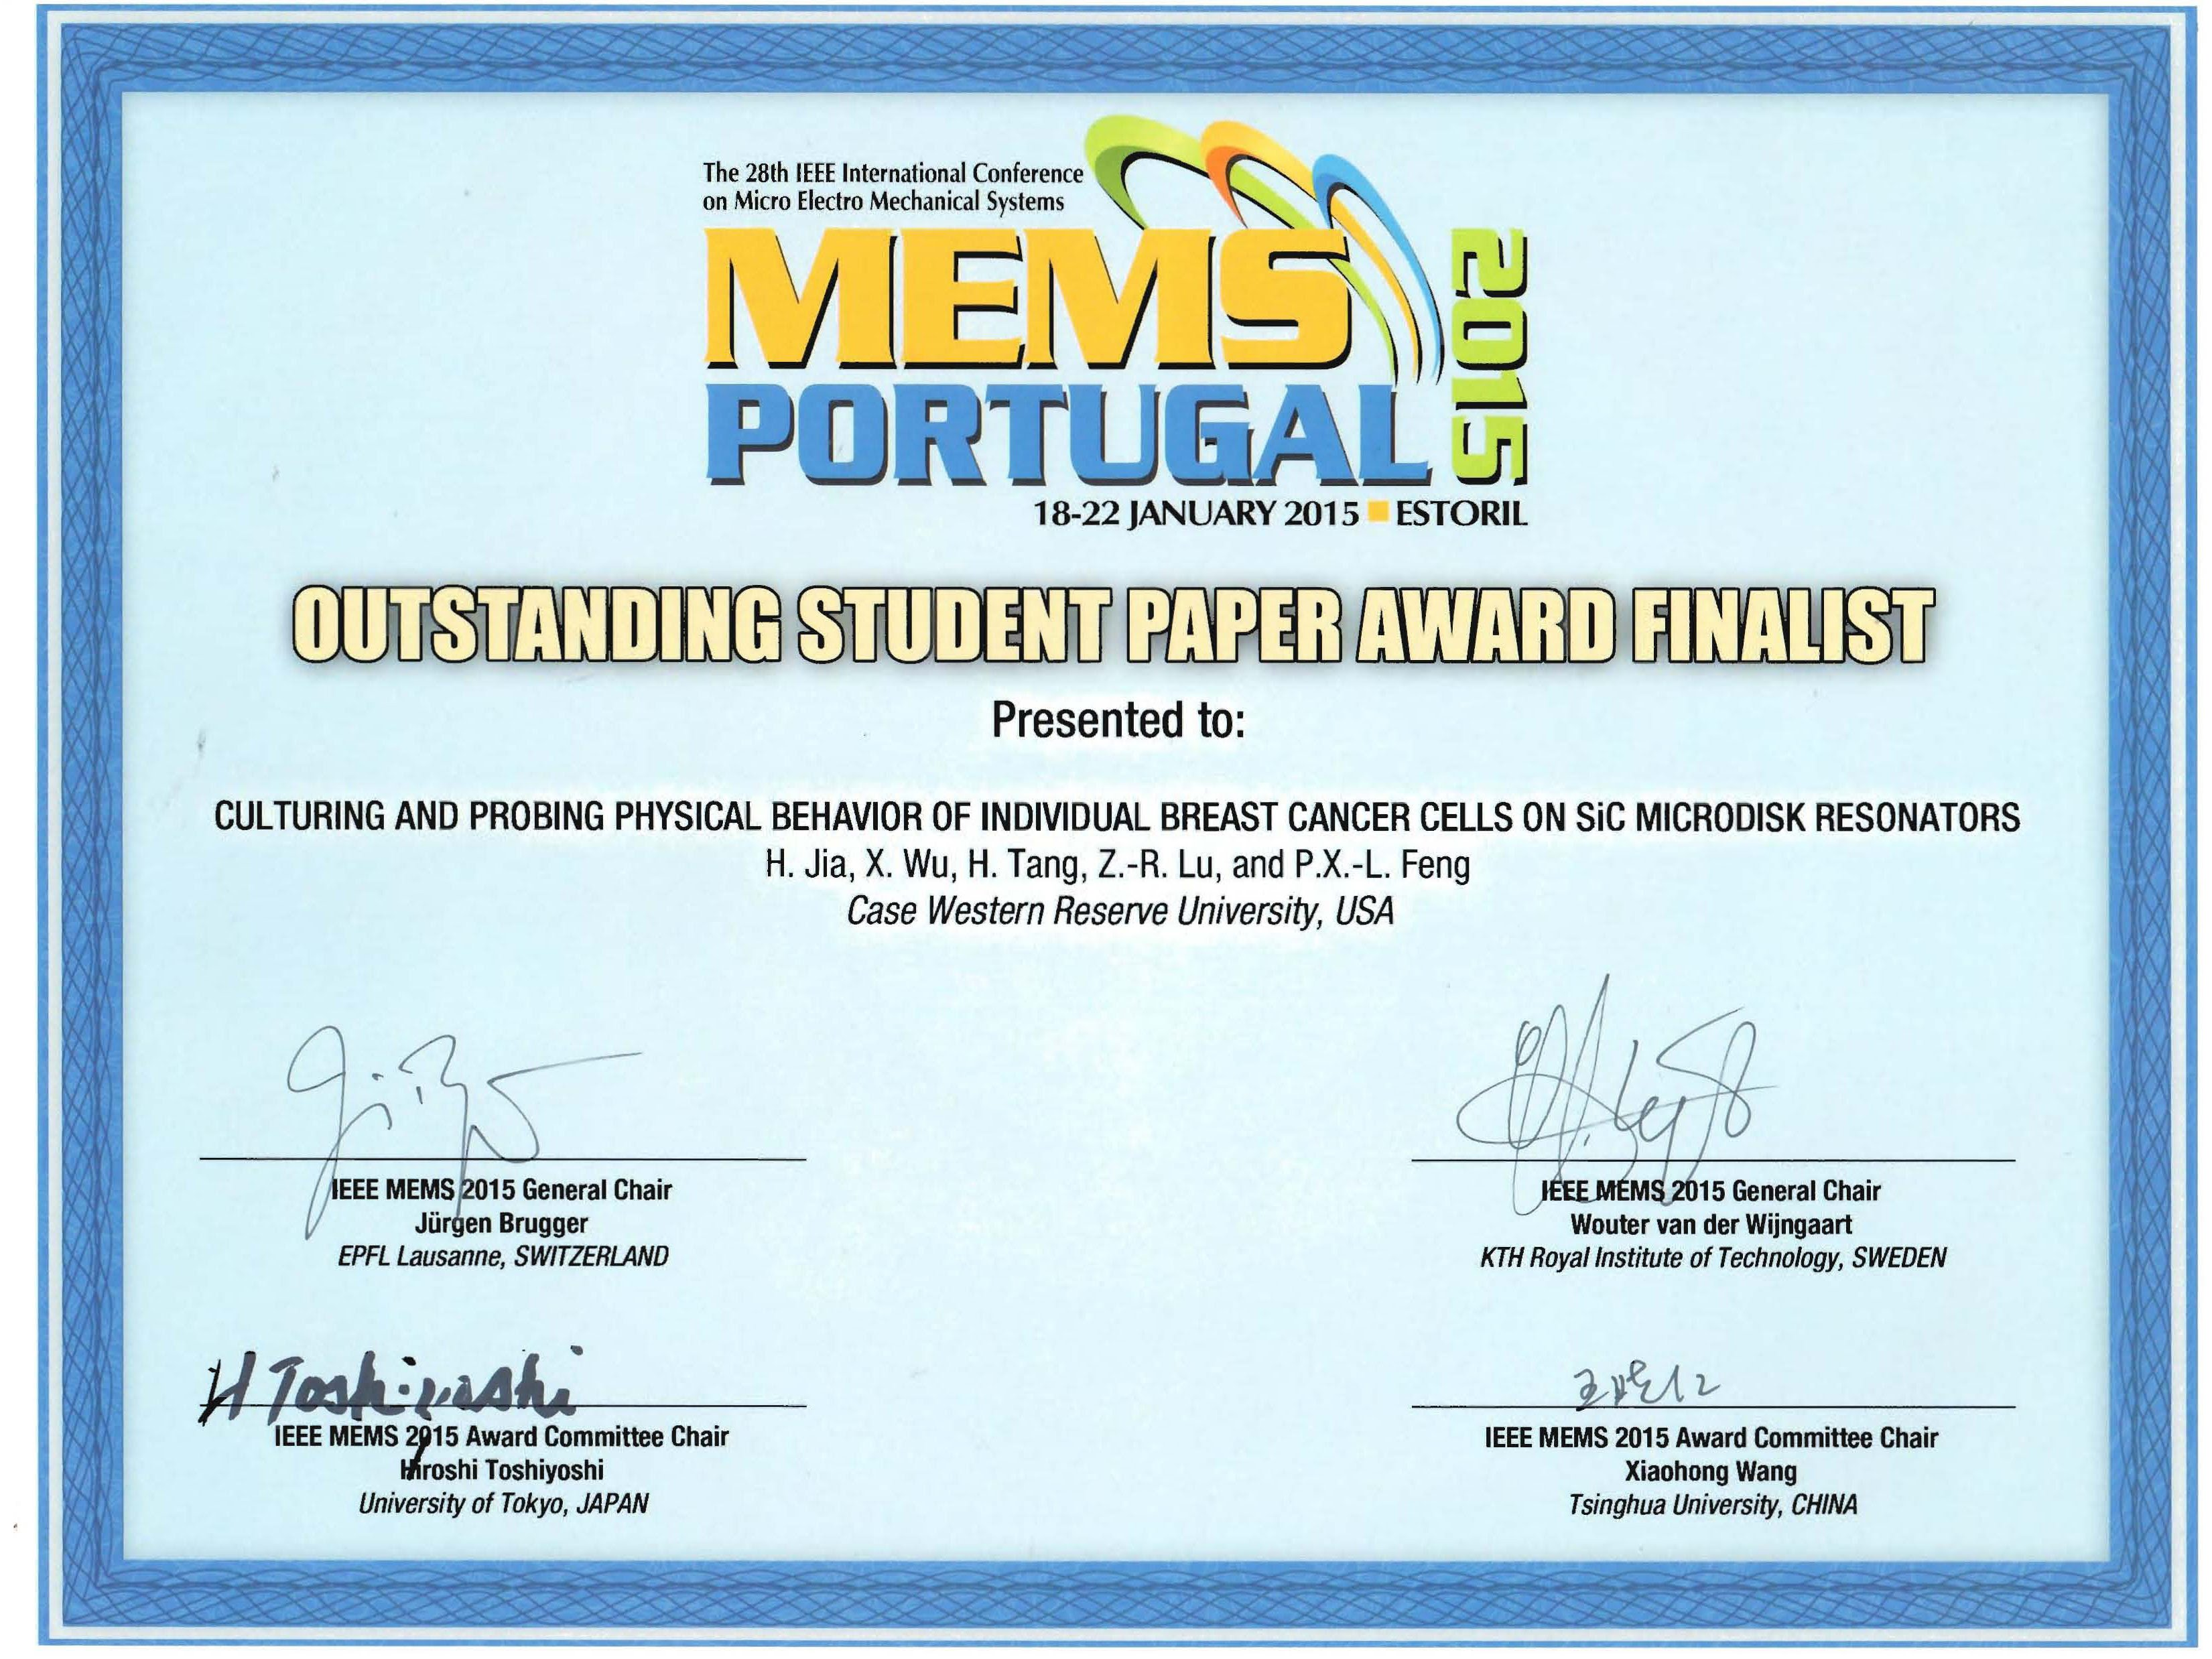 https://sites.google.com/a/case.edu/casenano/gallery/MEMS2015-OutstandingPaperAwardFinalist-Justin.jpg